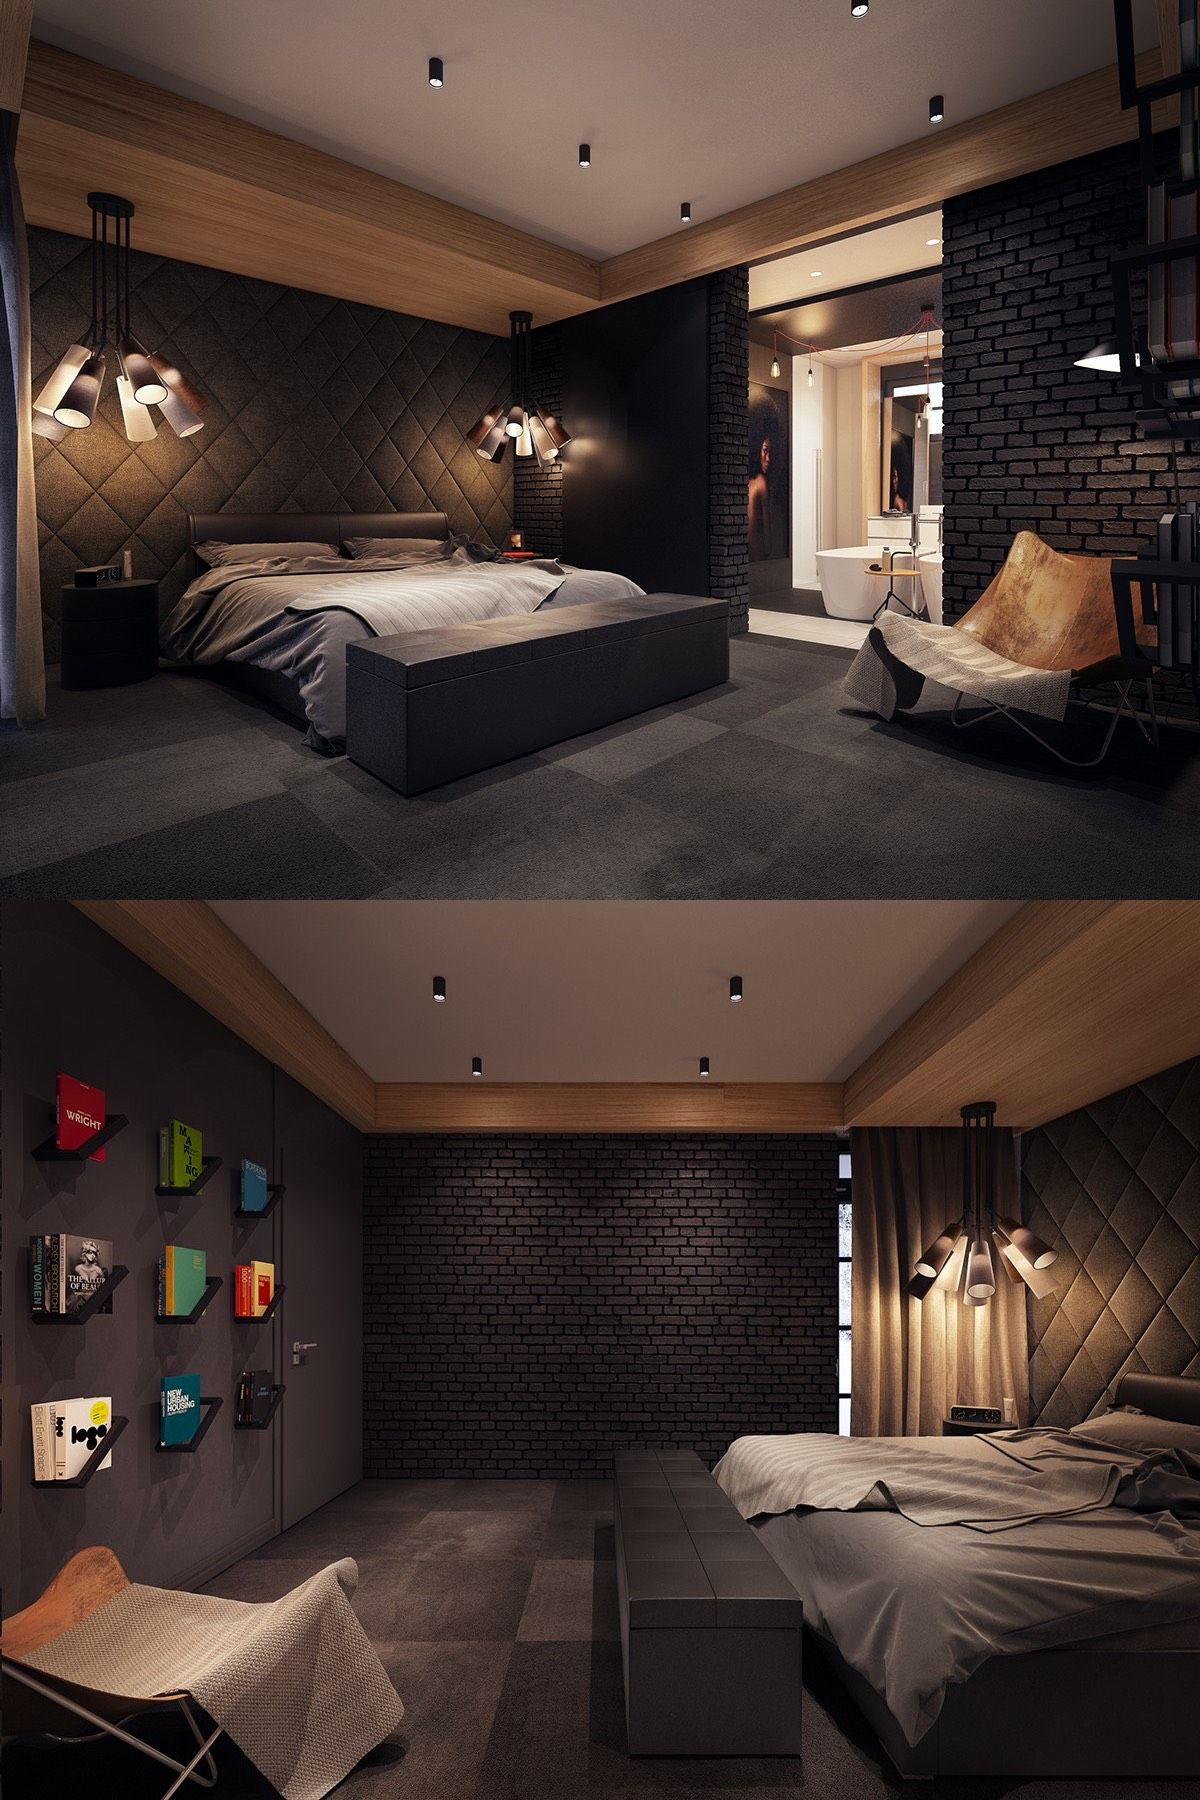 Dark Decor Dark Color Bedroom Decorating Ideas Shows A Luxury And